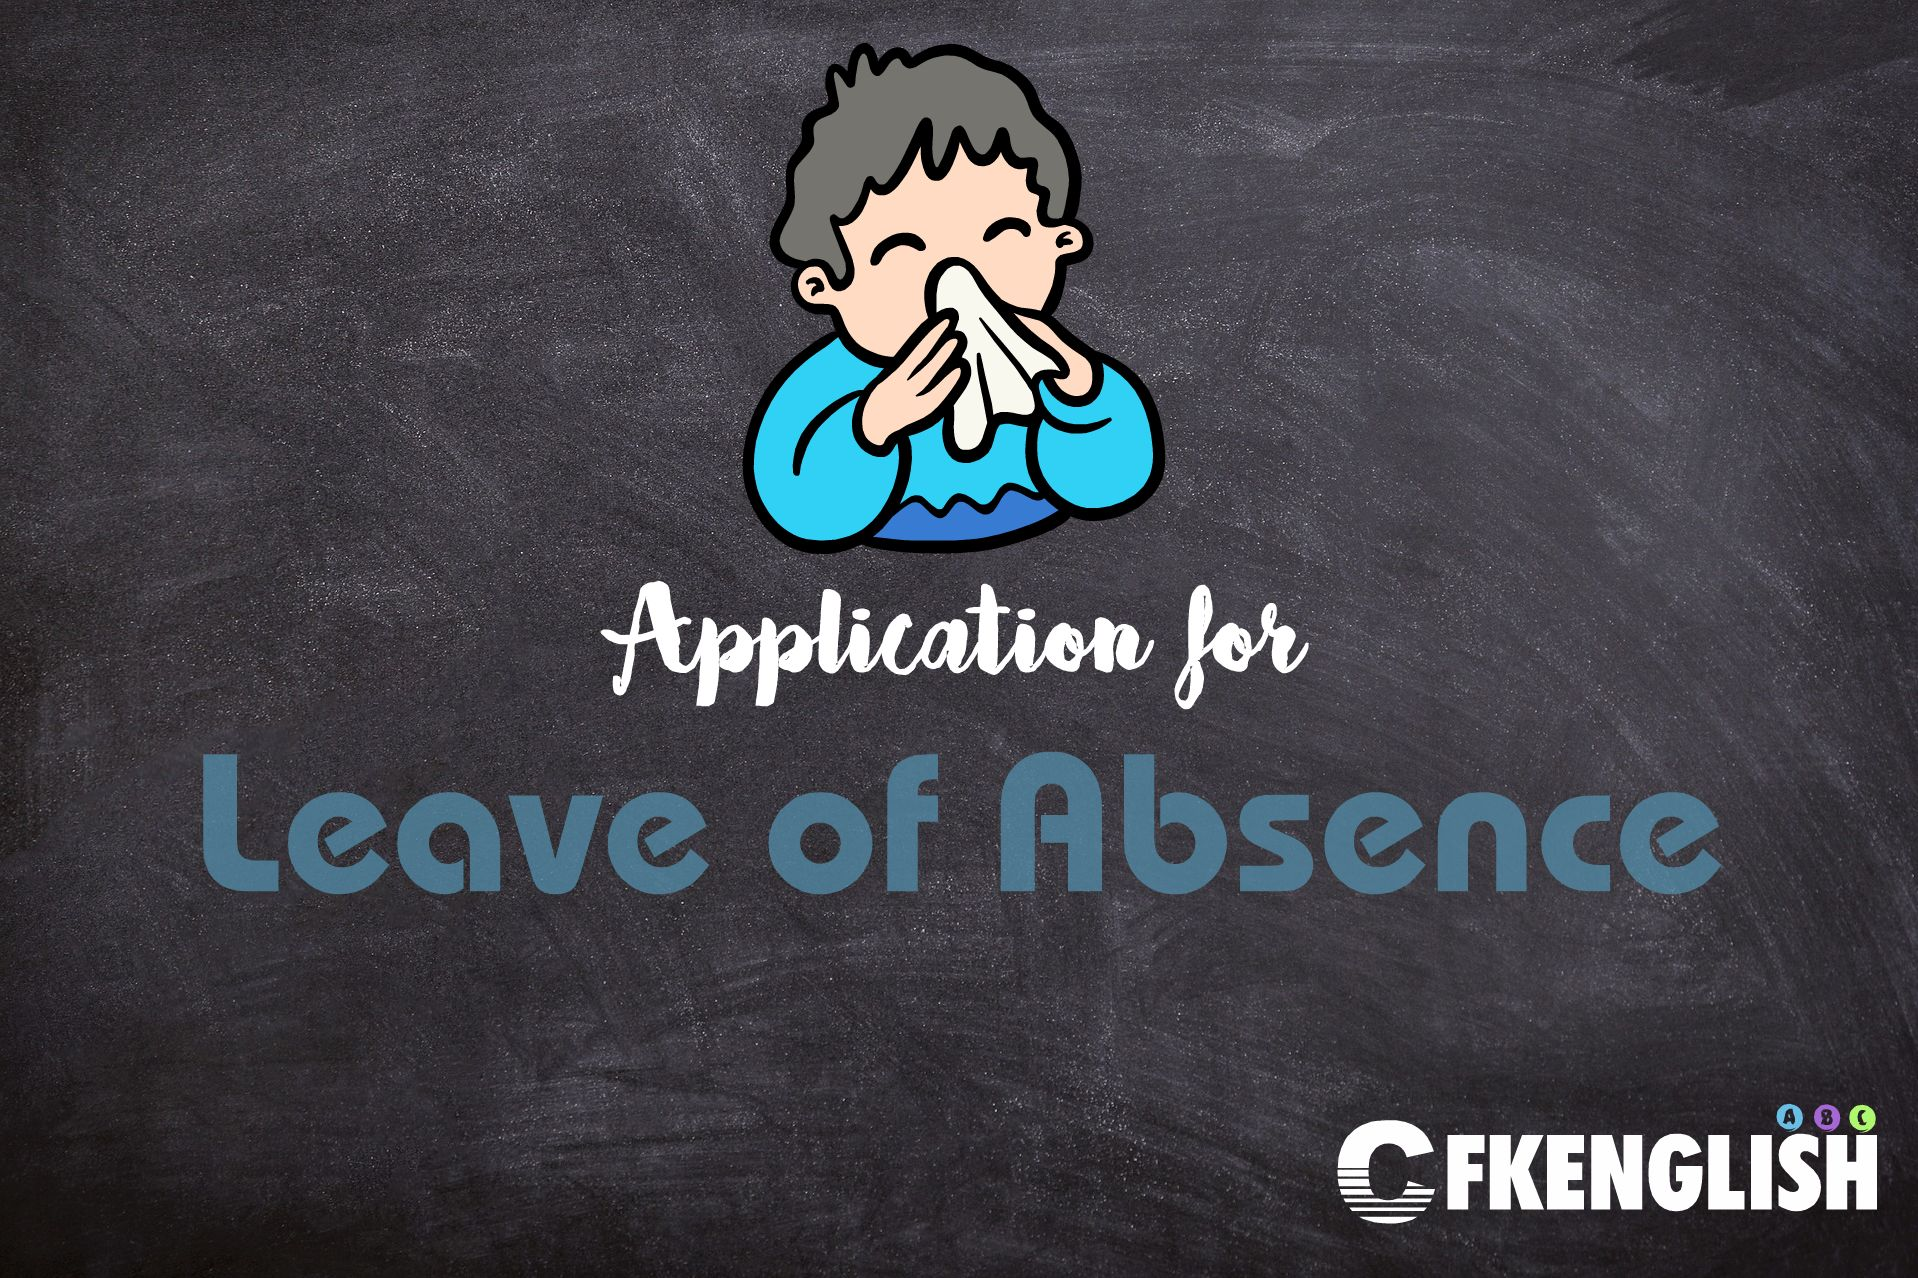 Application for leave of absence thecheapjerseys Gallery